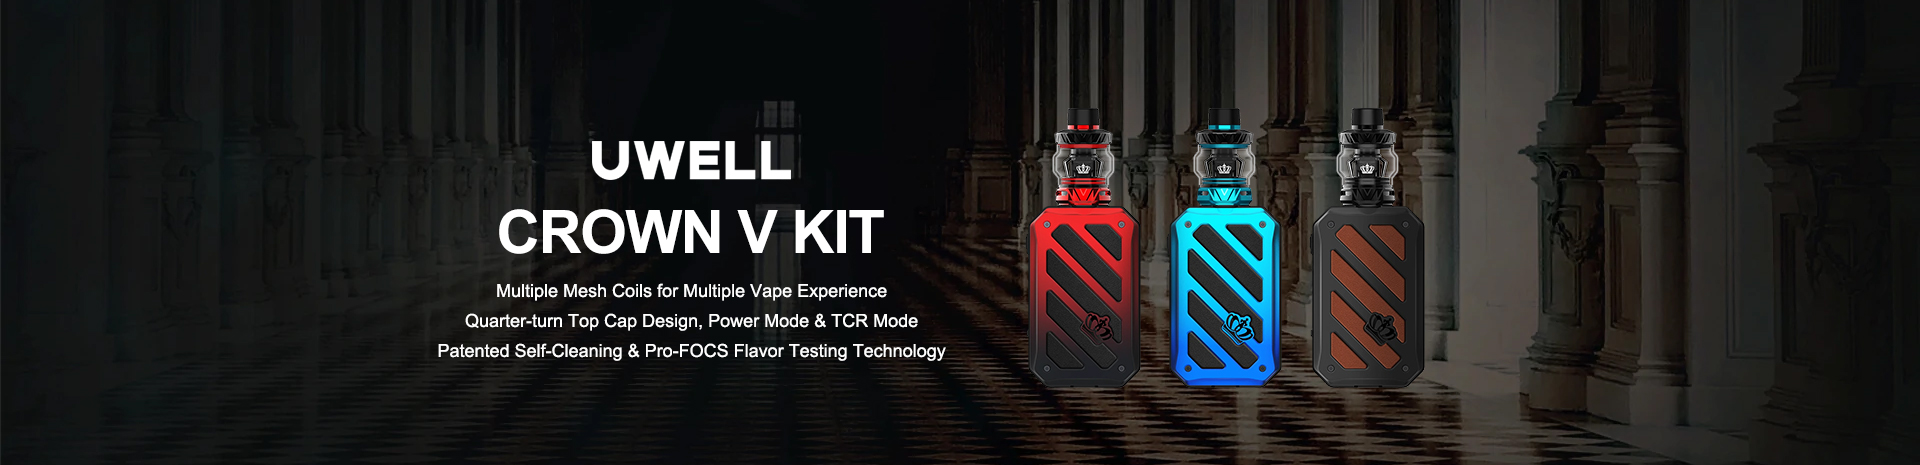 Uwell Crown V Kit Banner